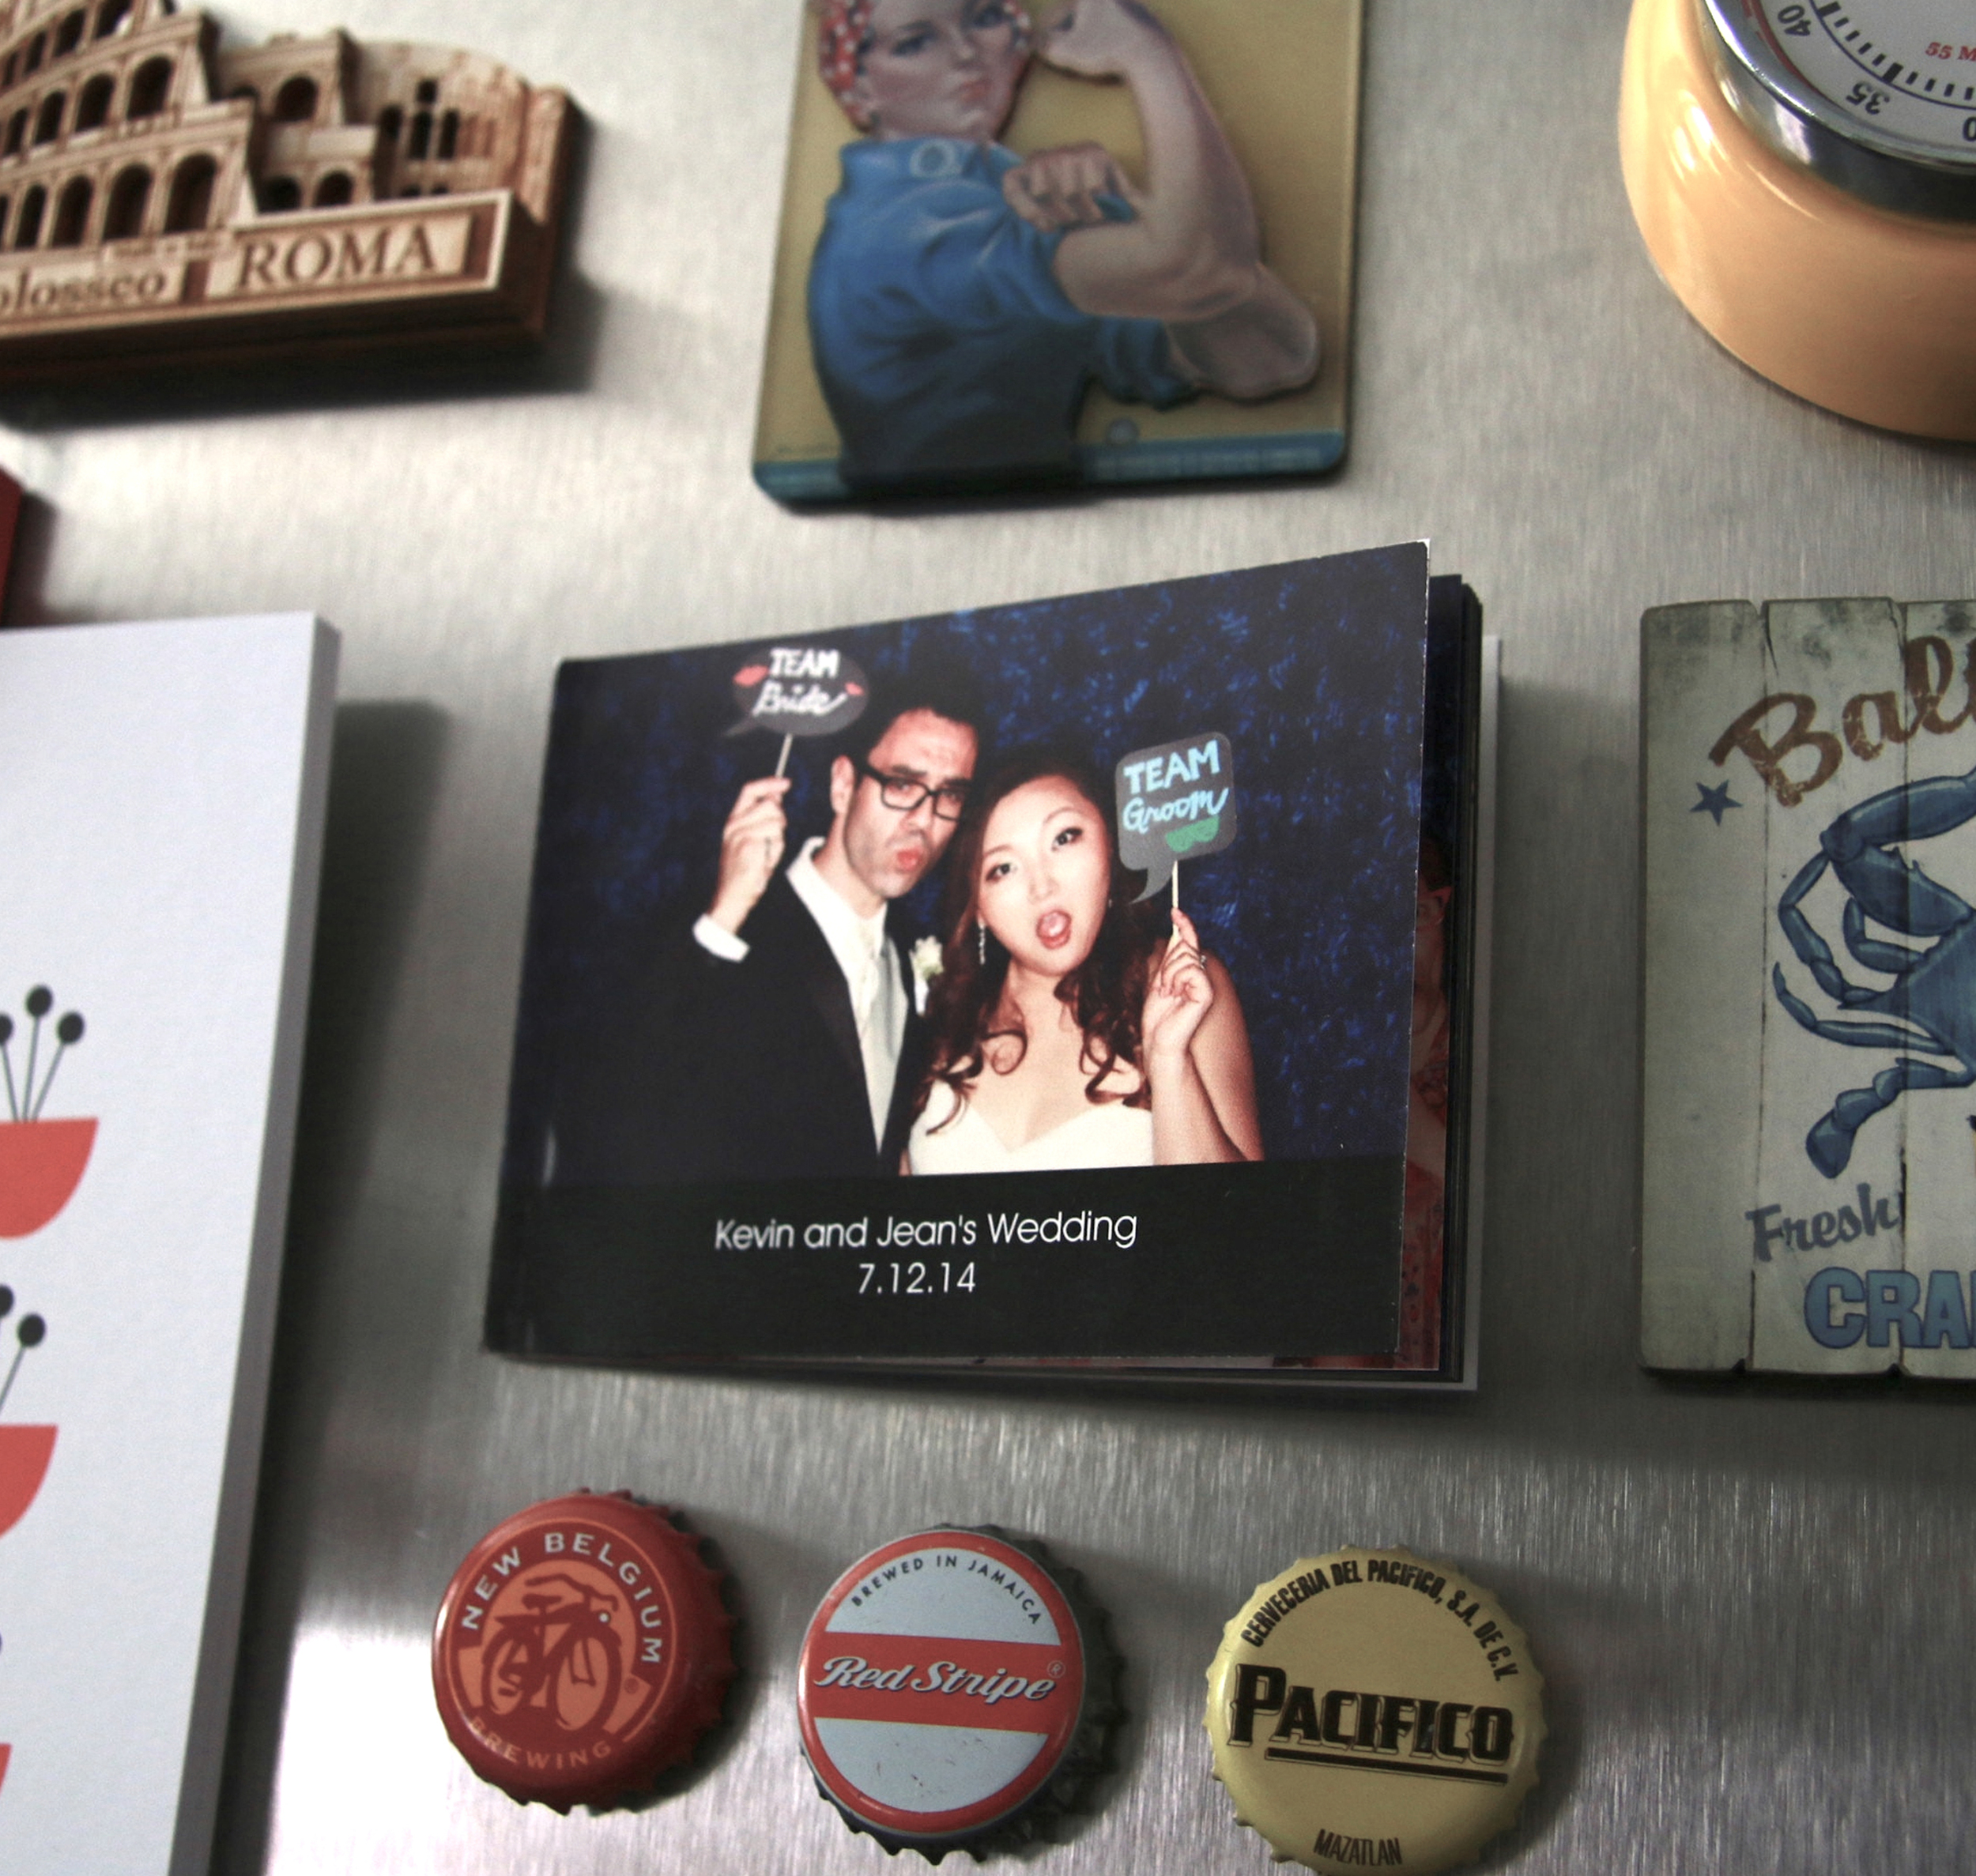 Packages include a small photo album that you can use as a magnet on your fridge.